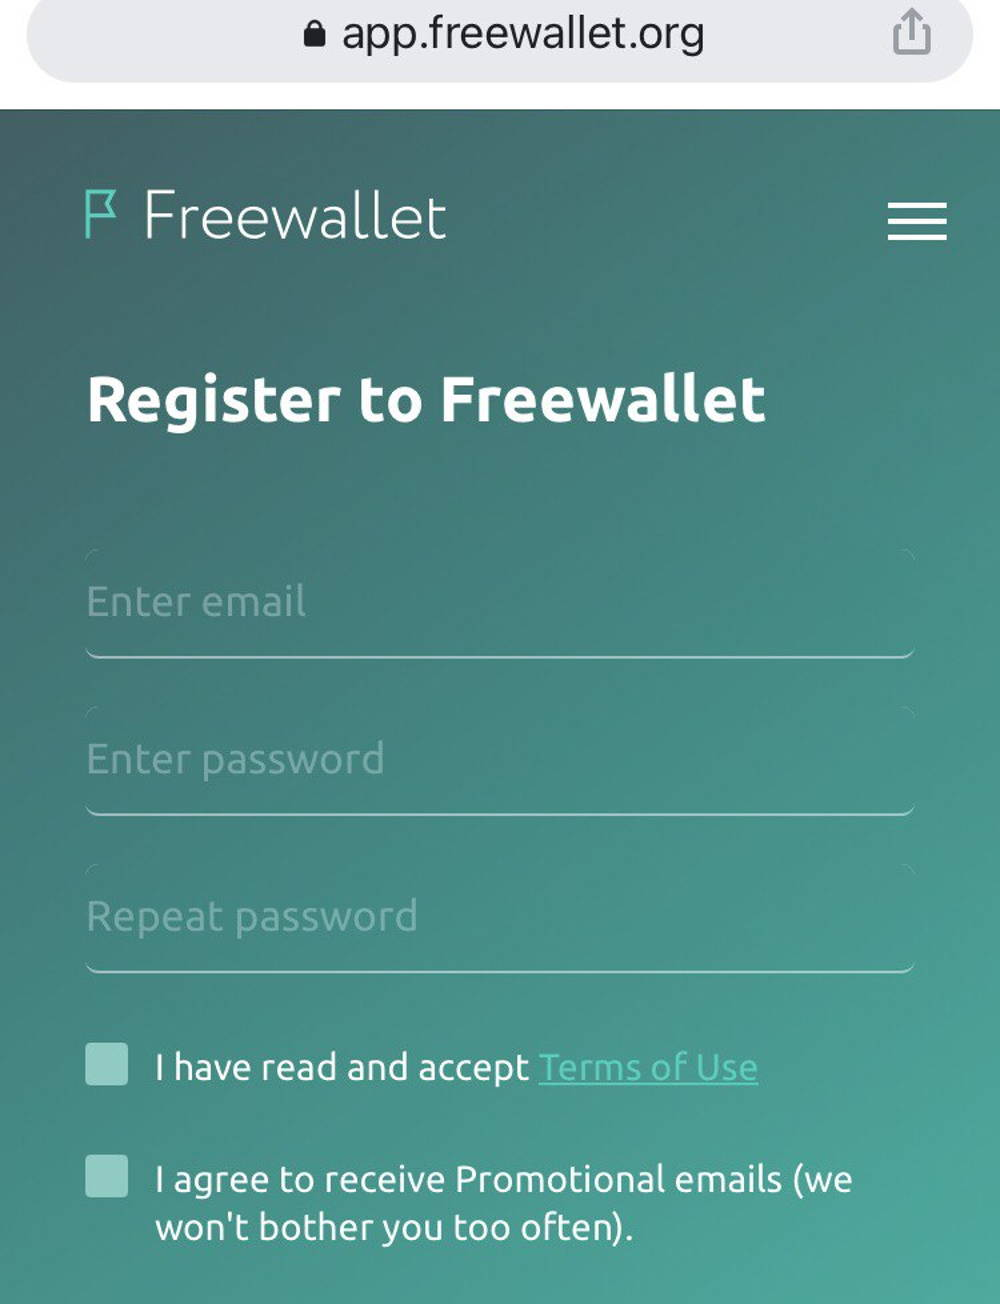 Freewallet_(m)_registration.jpg